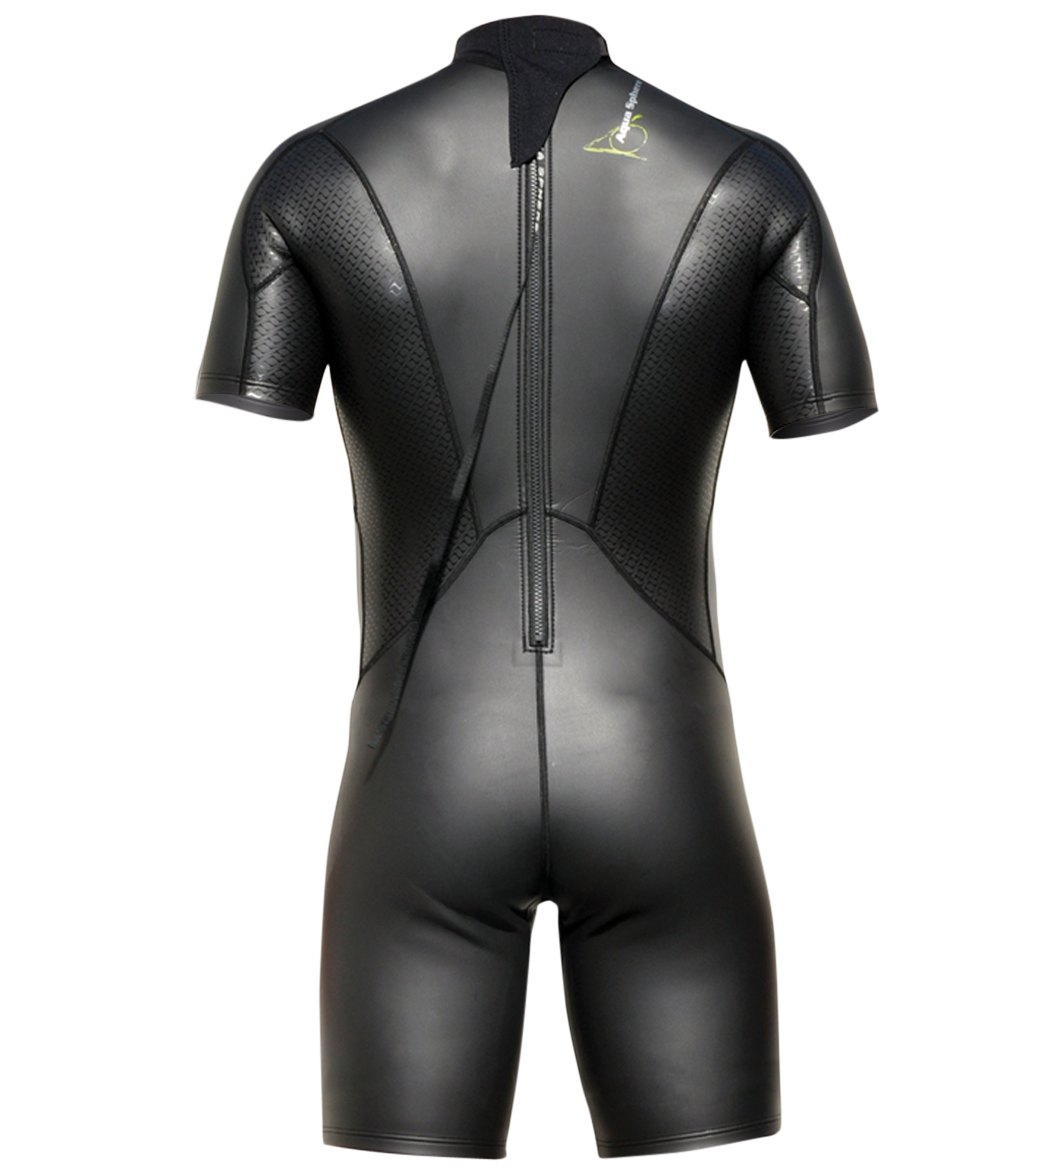 Aqua Sphere Men s WT80 Shorty Wetsuit at SwimOutlet.com - Free Shipping 323134d94